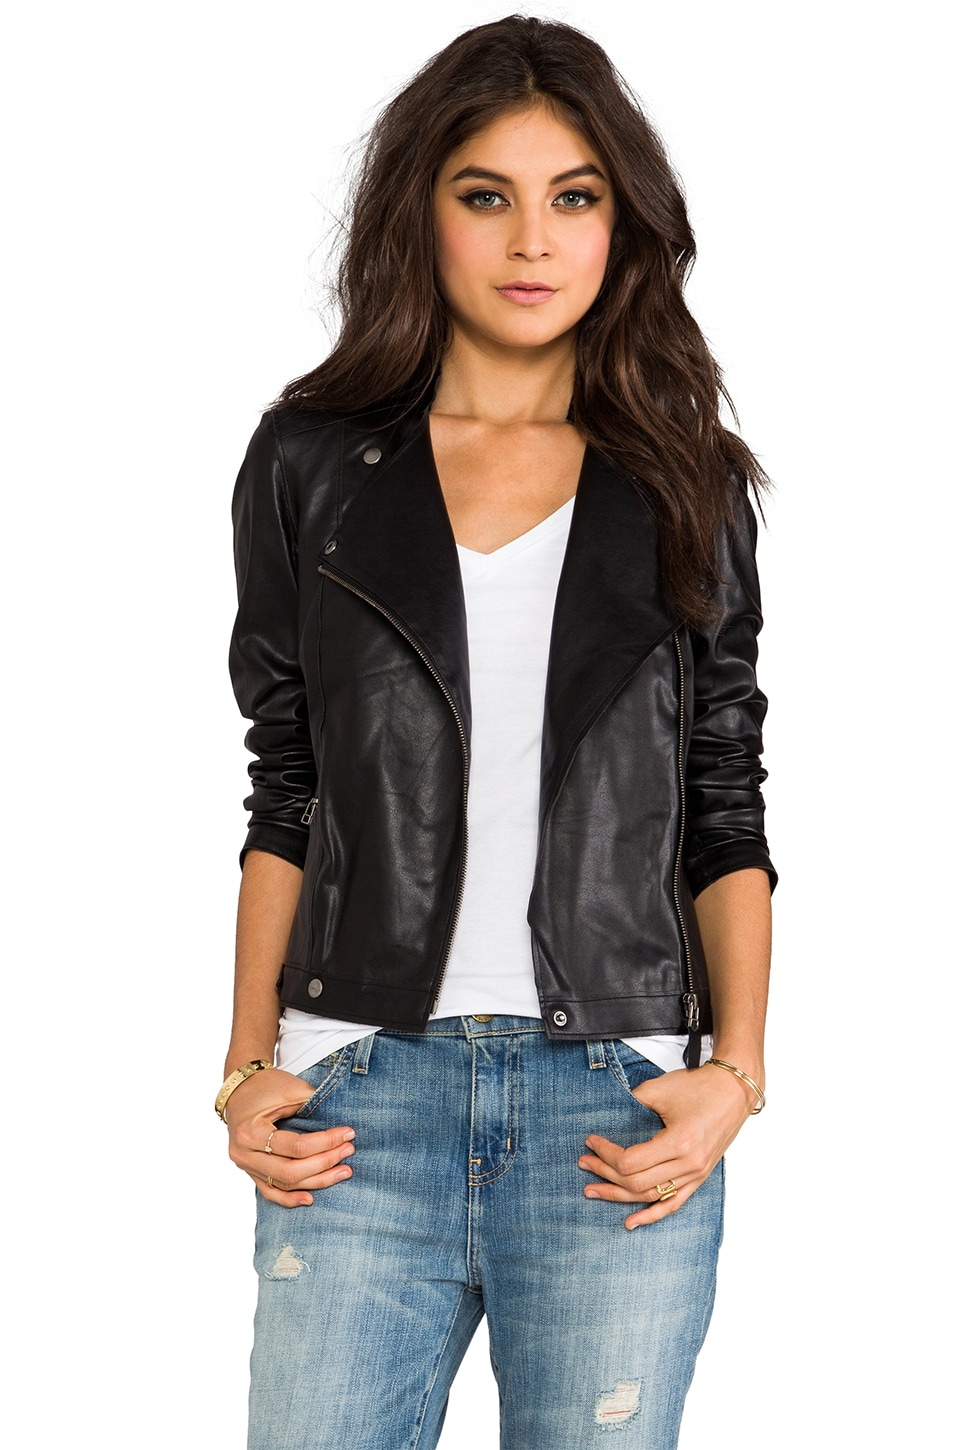 Velvet by Graham & Spencer Leona Motorcycle Jacket in Black